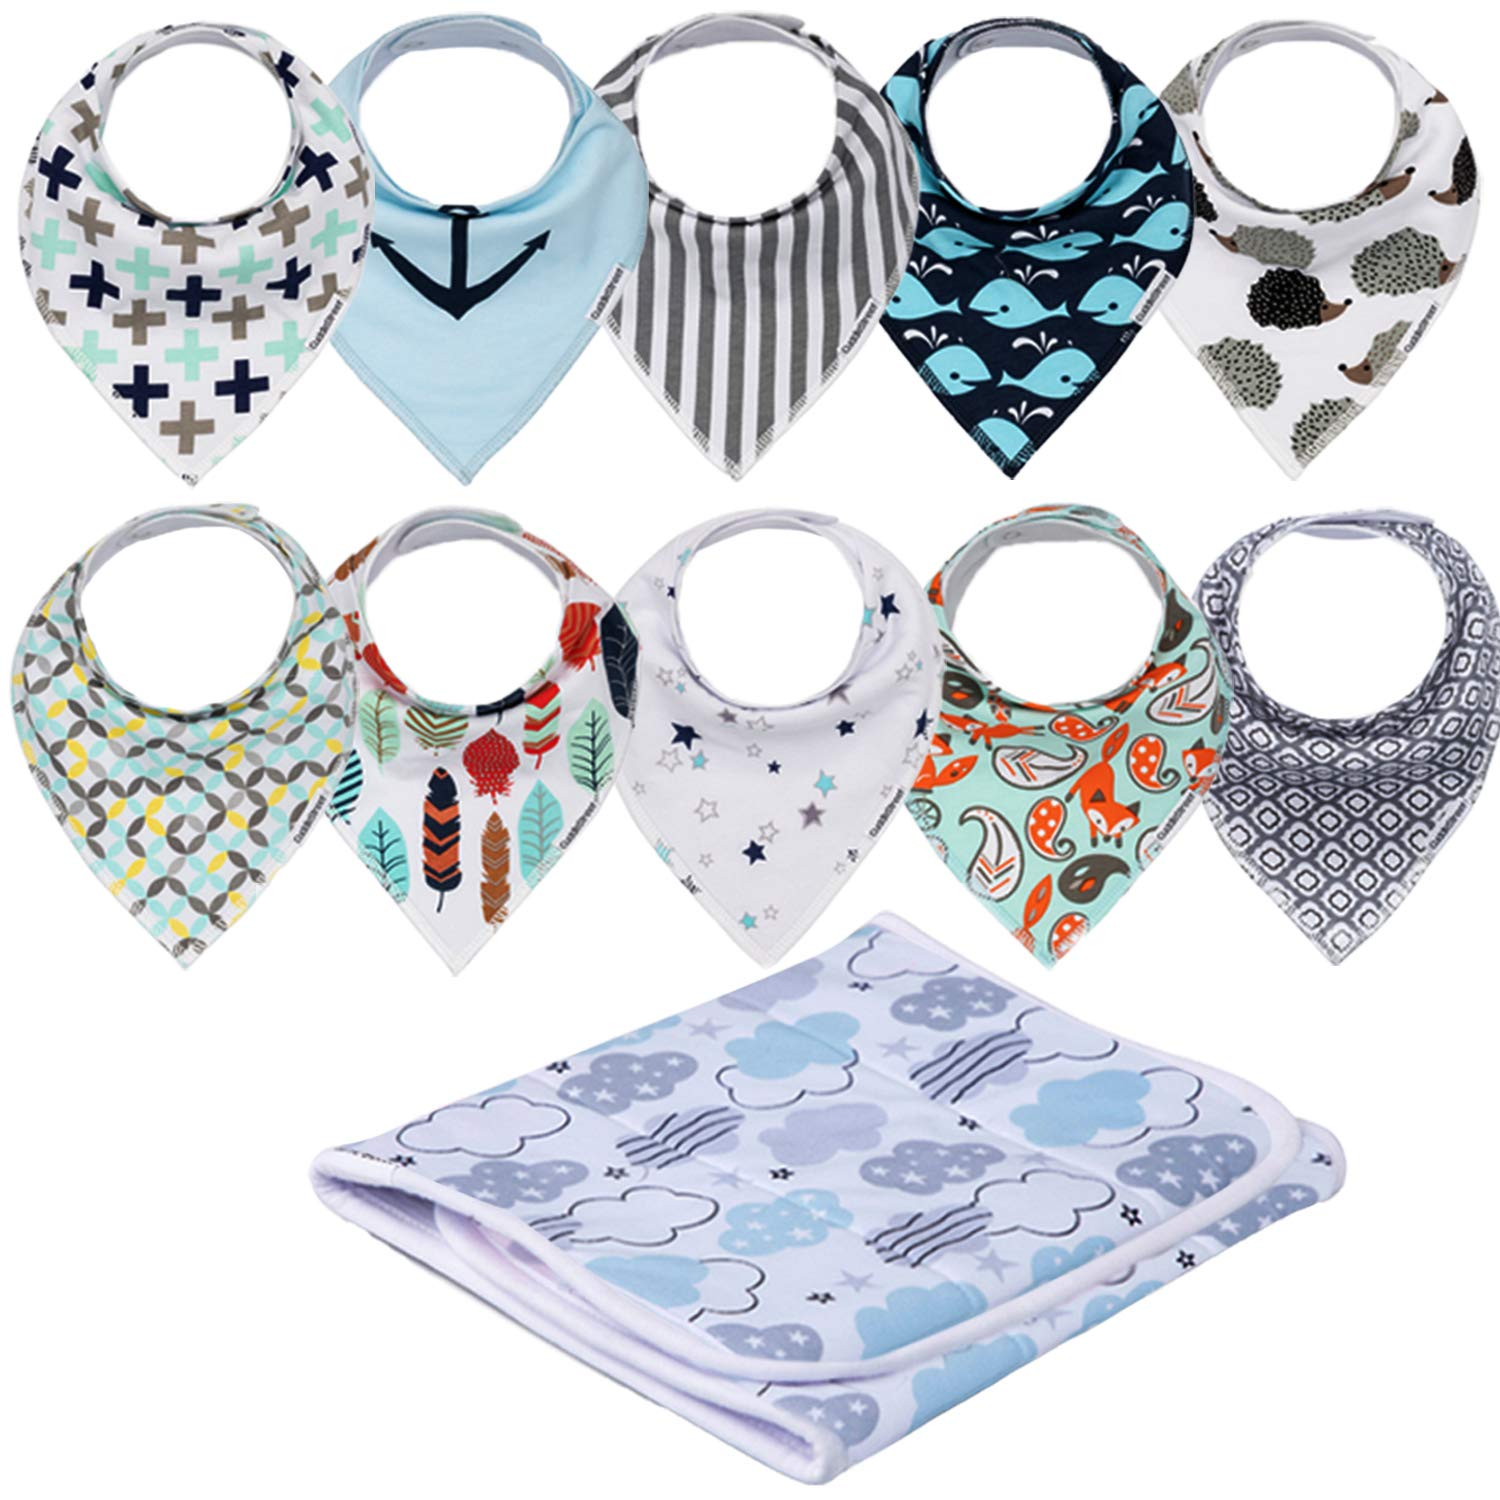 Newborn Baby Toddler Plaid Free Shipping Gender Neutral Bib in Green Gingham Baby Shower Gift Burp Cloth Drool Spit-Up